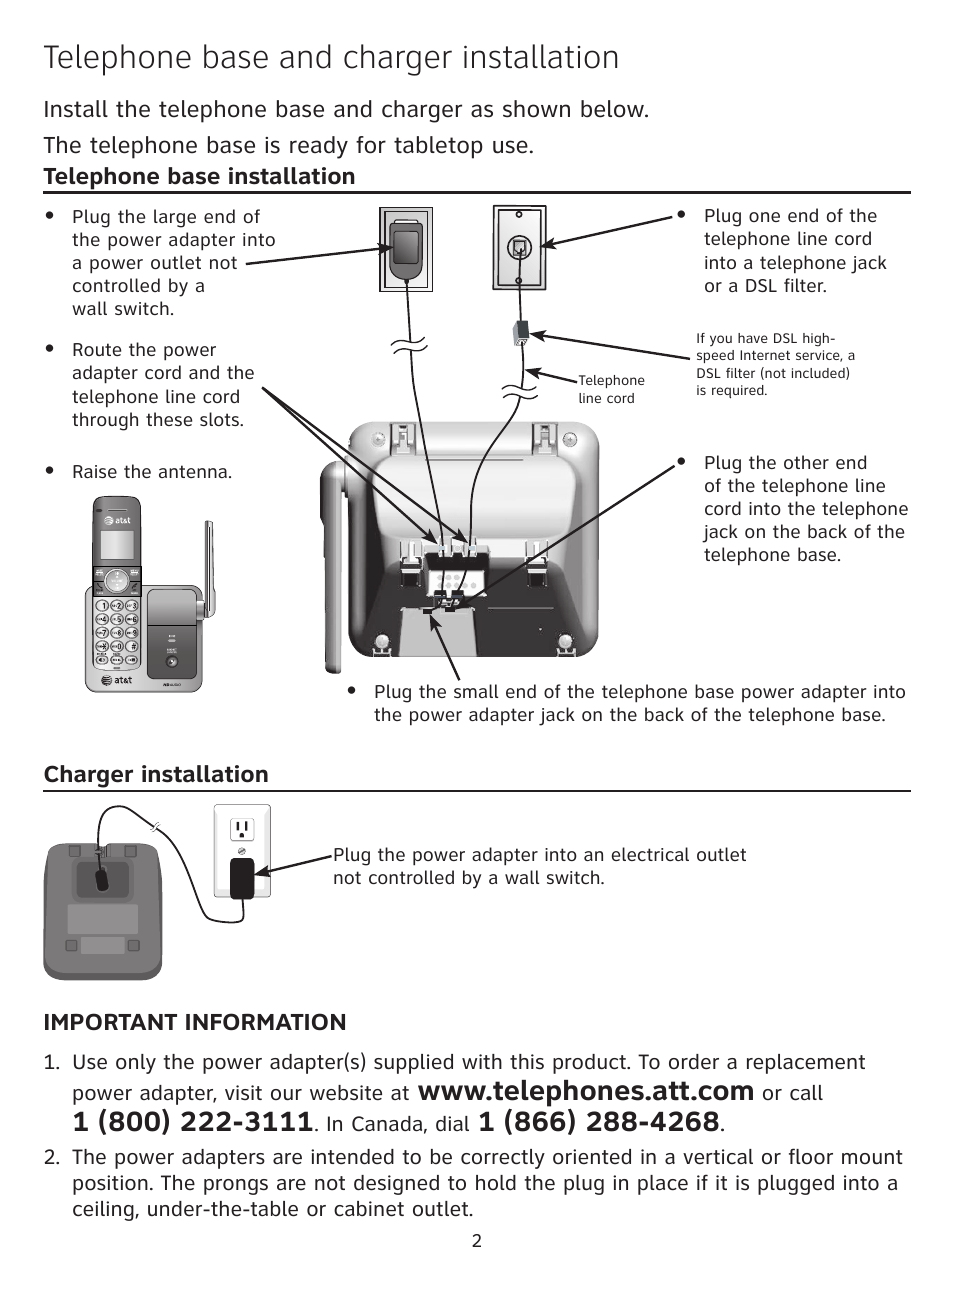 medium resolution of telephone base and charger installation at t cl81301 user manual page 3 9